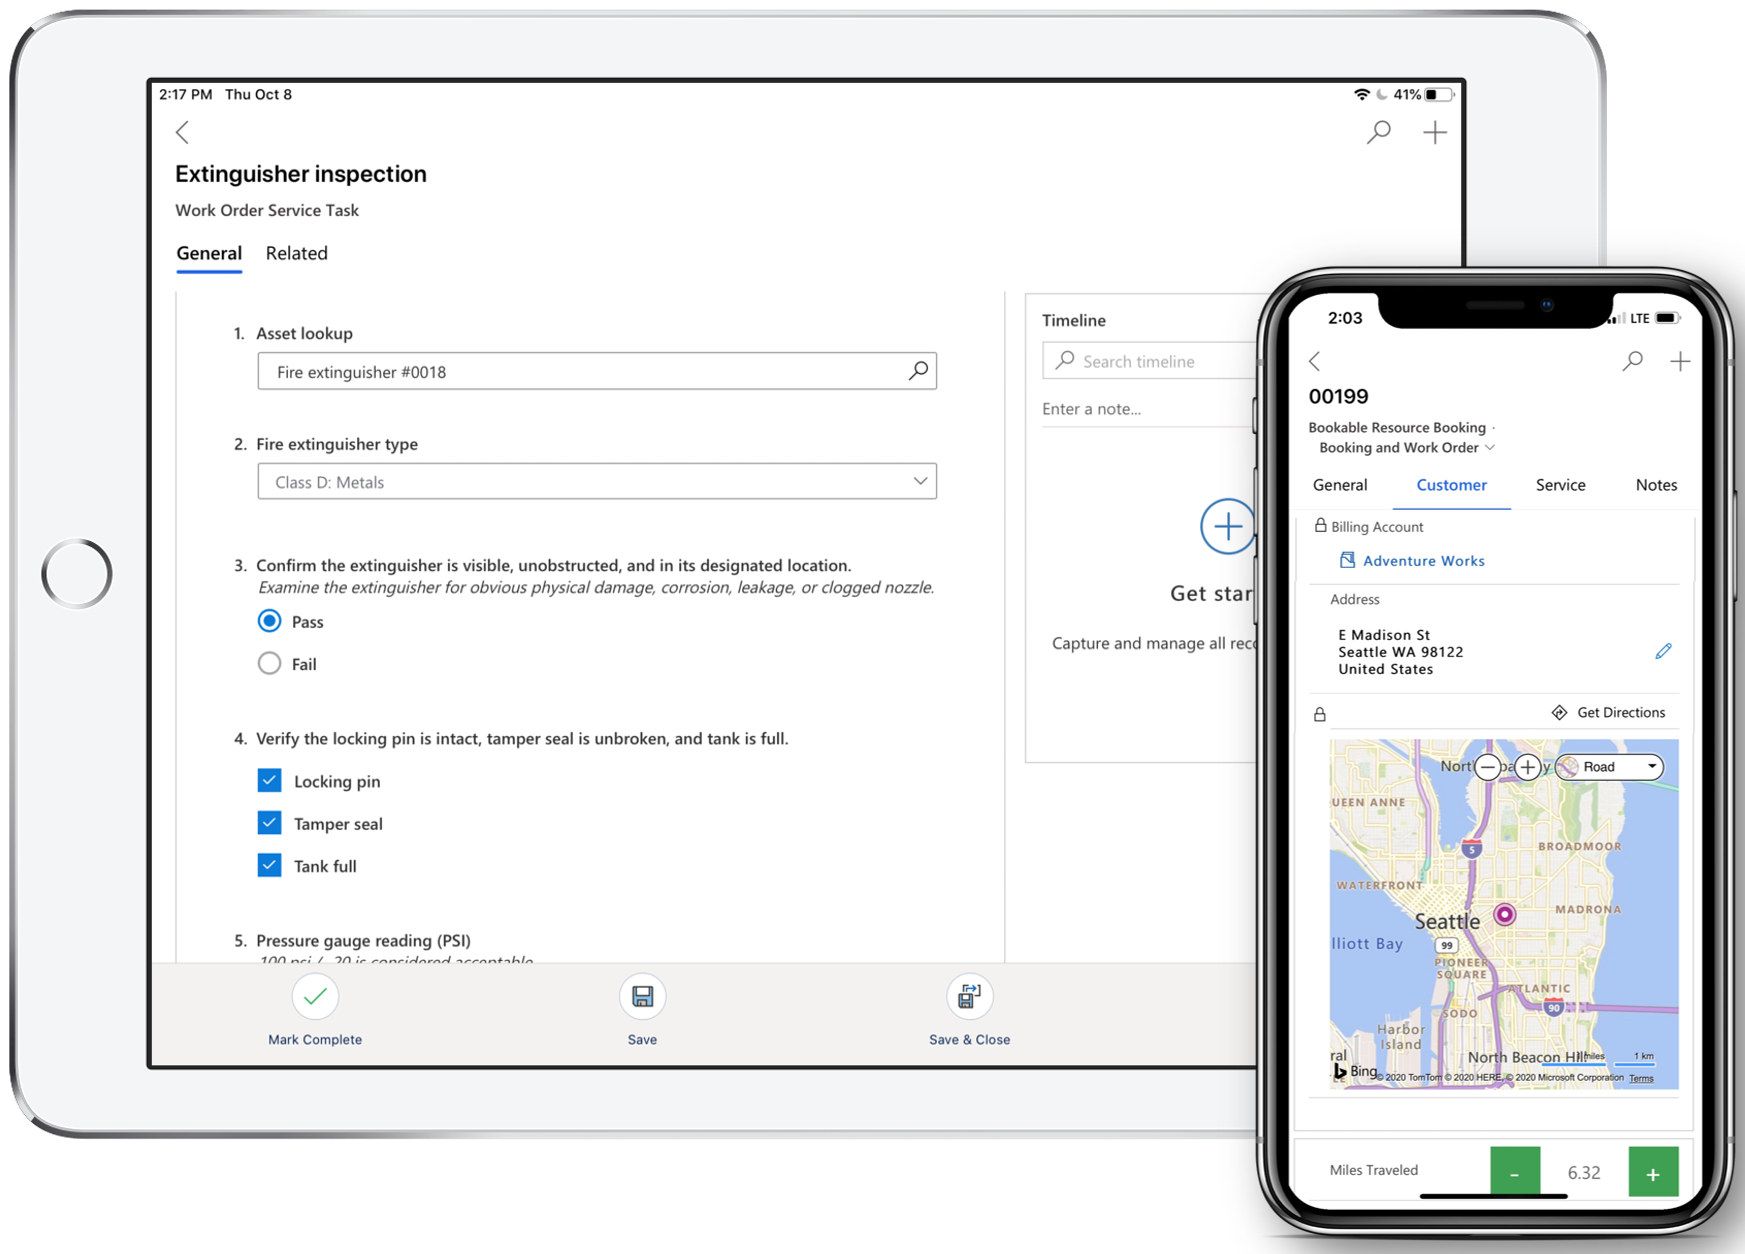 Simulated image of the Field Service (Dynamics 365) mobile app on a phone and a tablet.